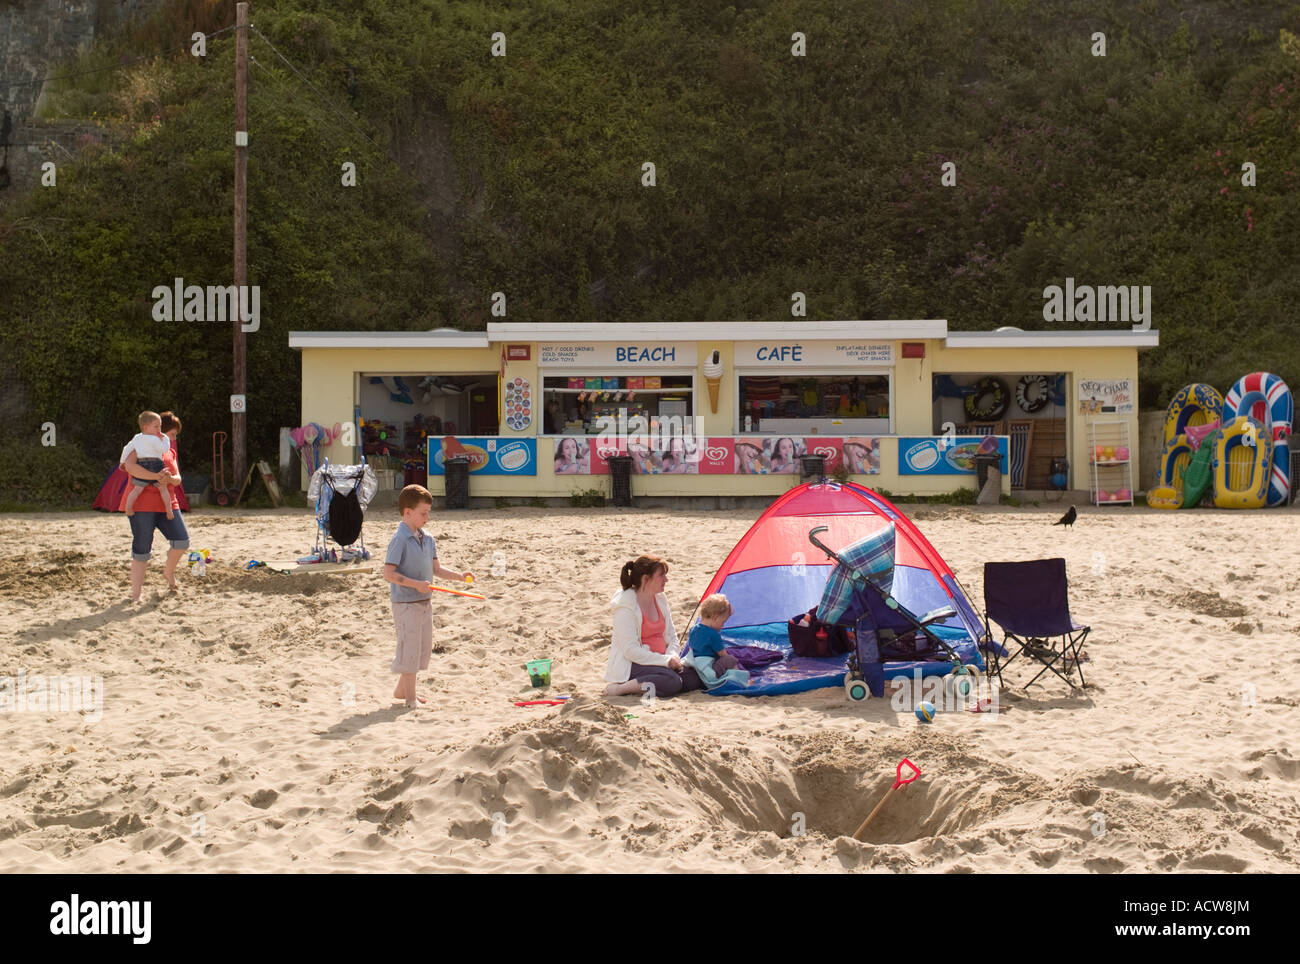 Beach cafe New Quay (Newquay / Cei Newydd) Ceredigion west wales coast, UK, summer afternoon - Stock Image